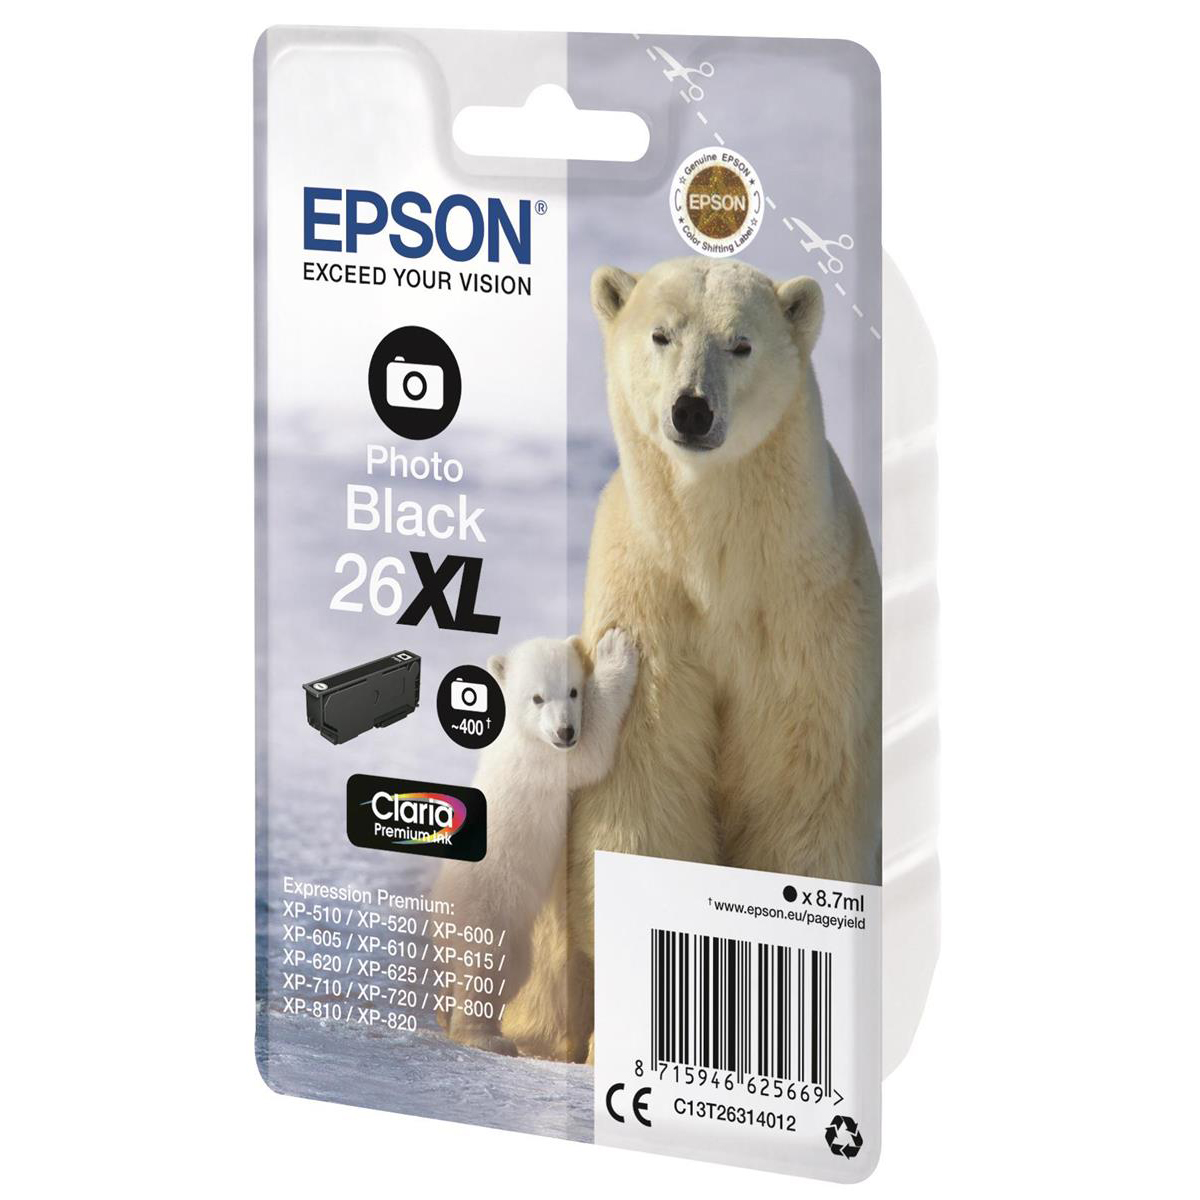 Epson 26XL Inkjet Cartridge Polar Bear High Yield Page Life 400pp 8.7ml Photo Black Ref C13T26314012